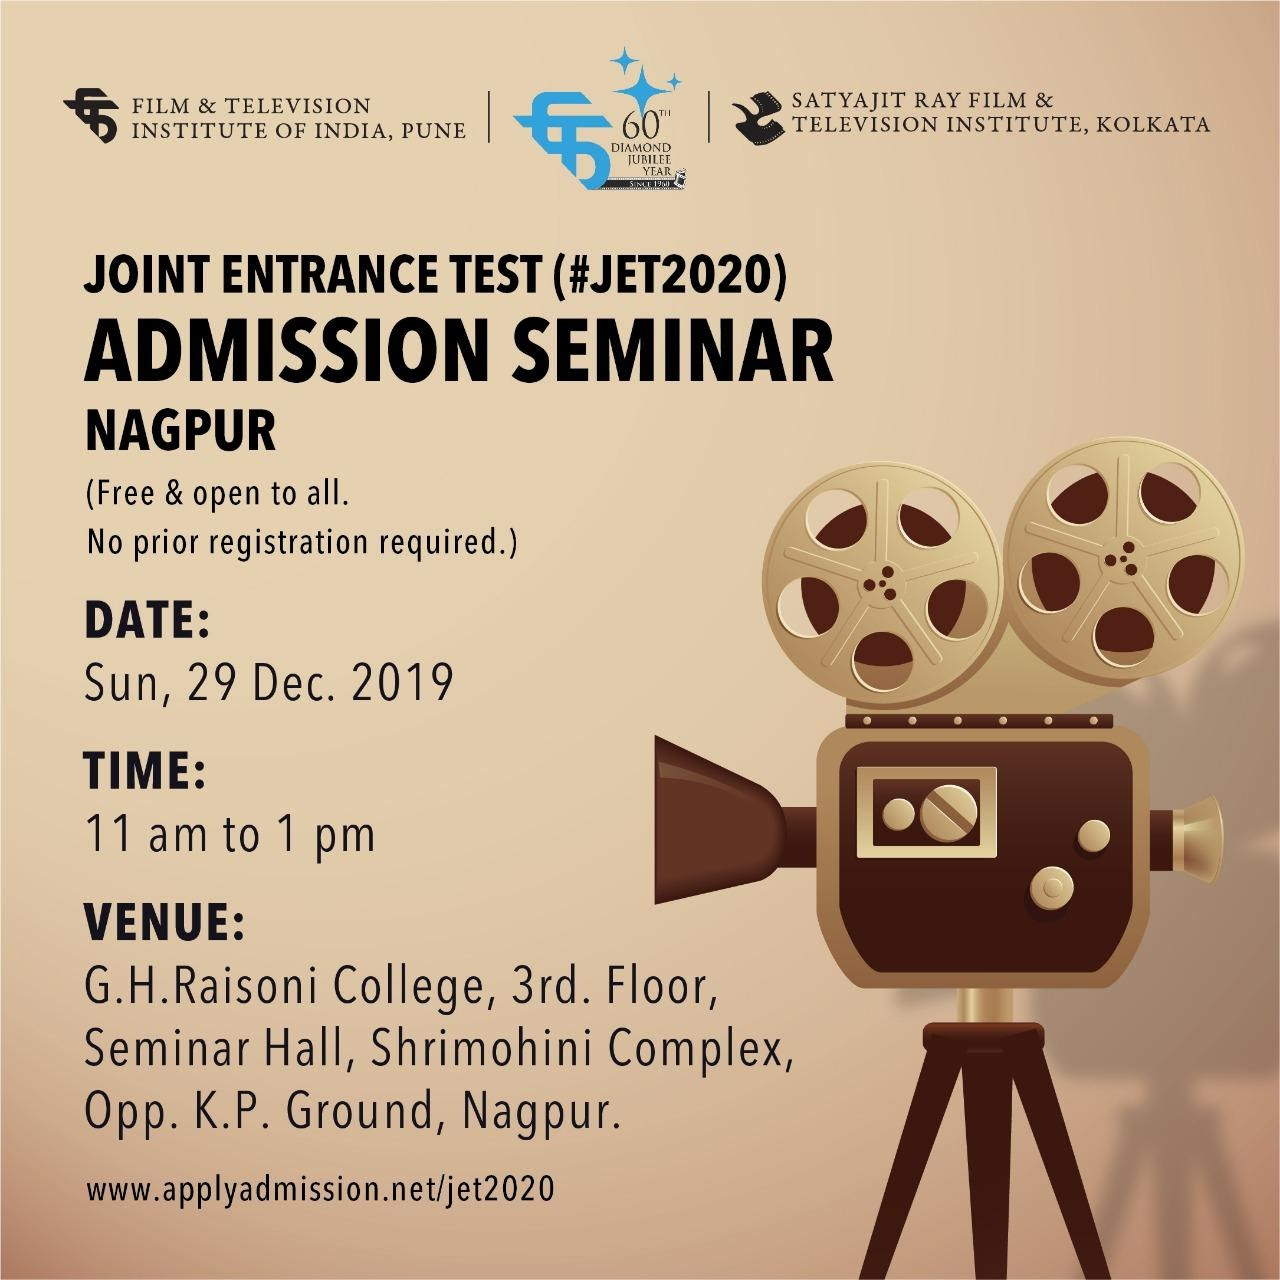 Admissions to FTII and SRFTI in Nagpur